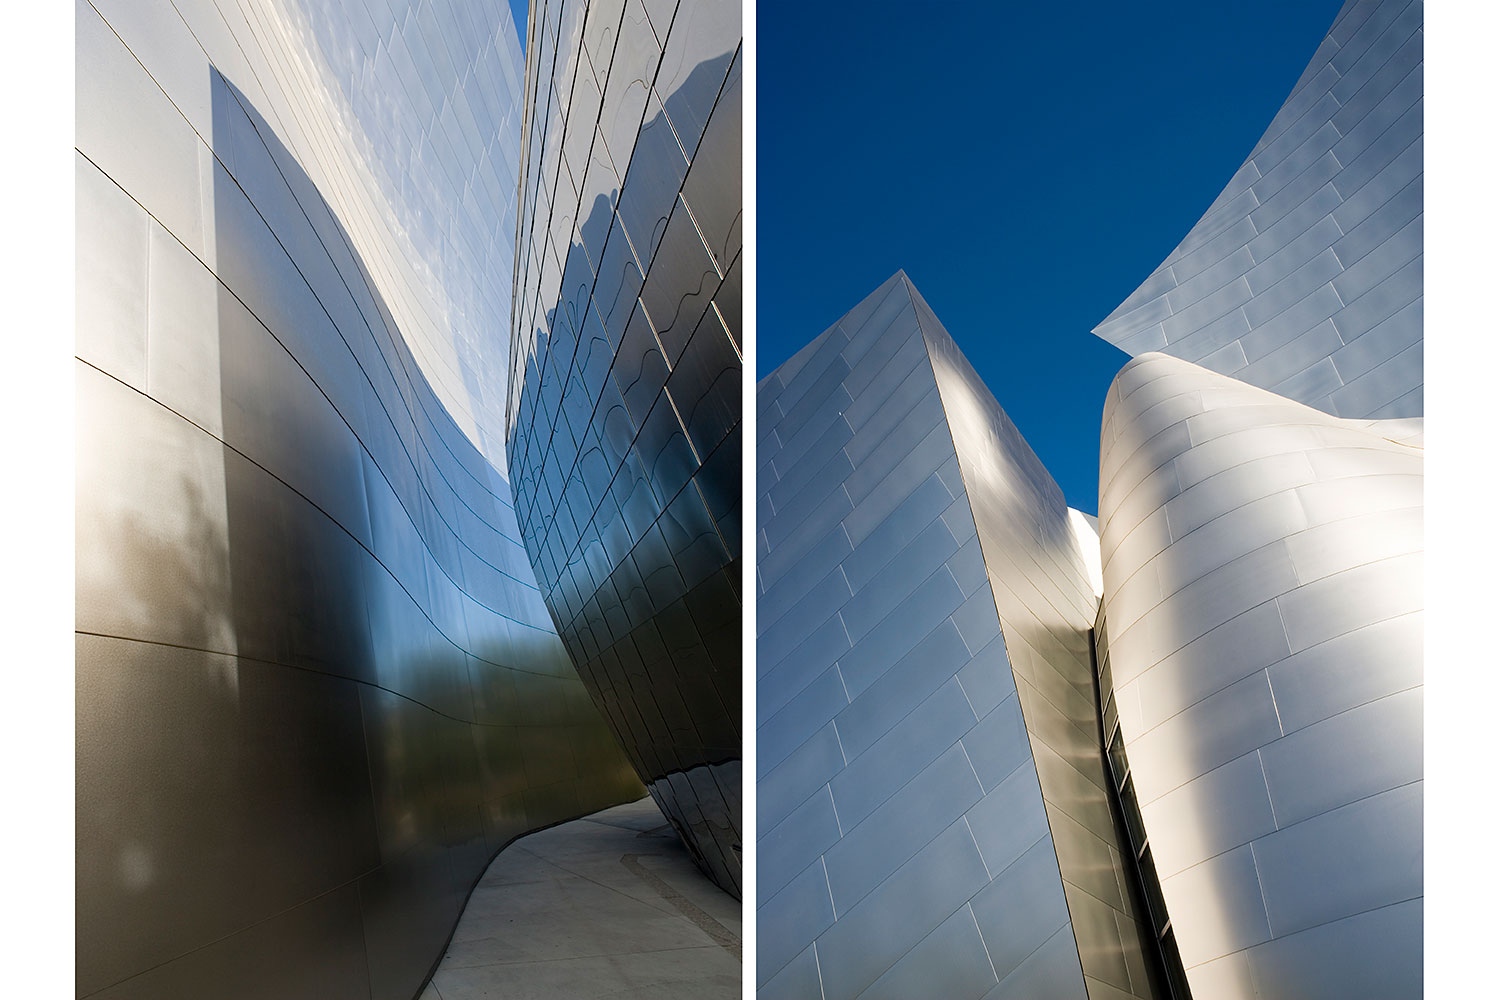 Walt Disney Concert Hall by Frank Gehry. Los Angeles